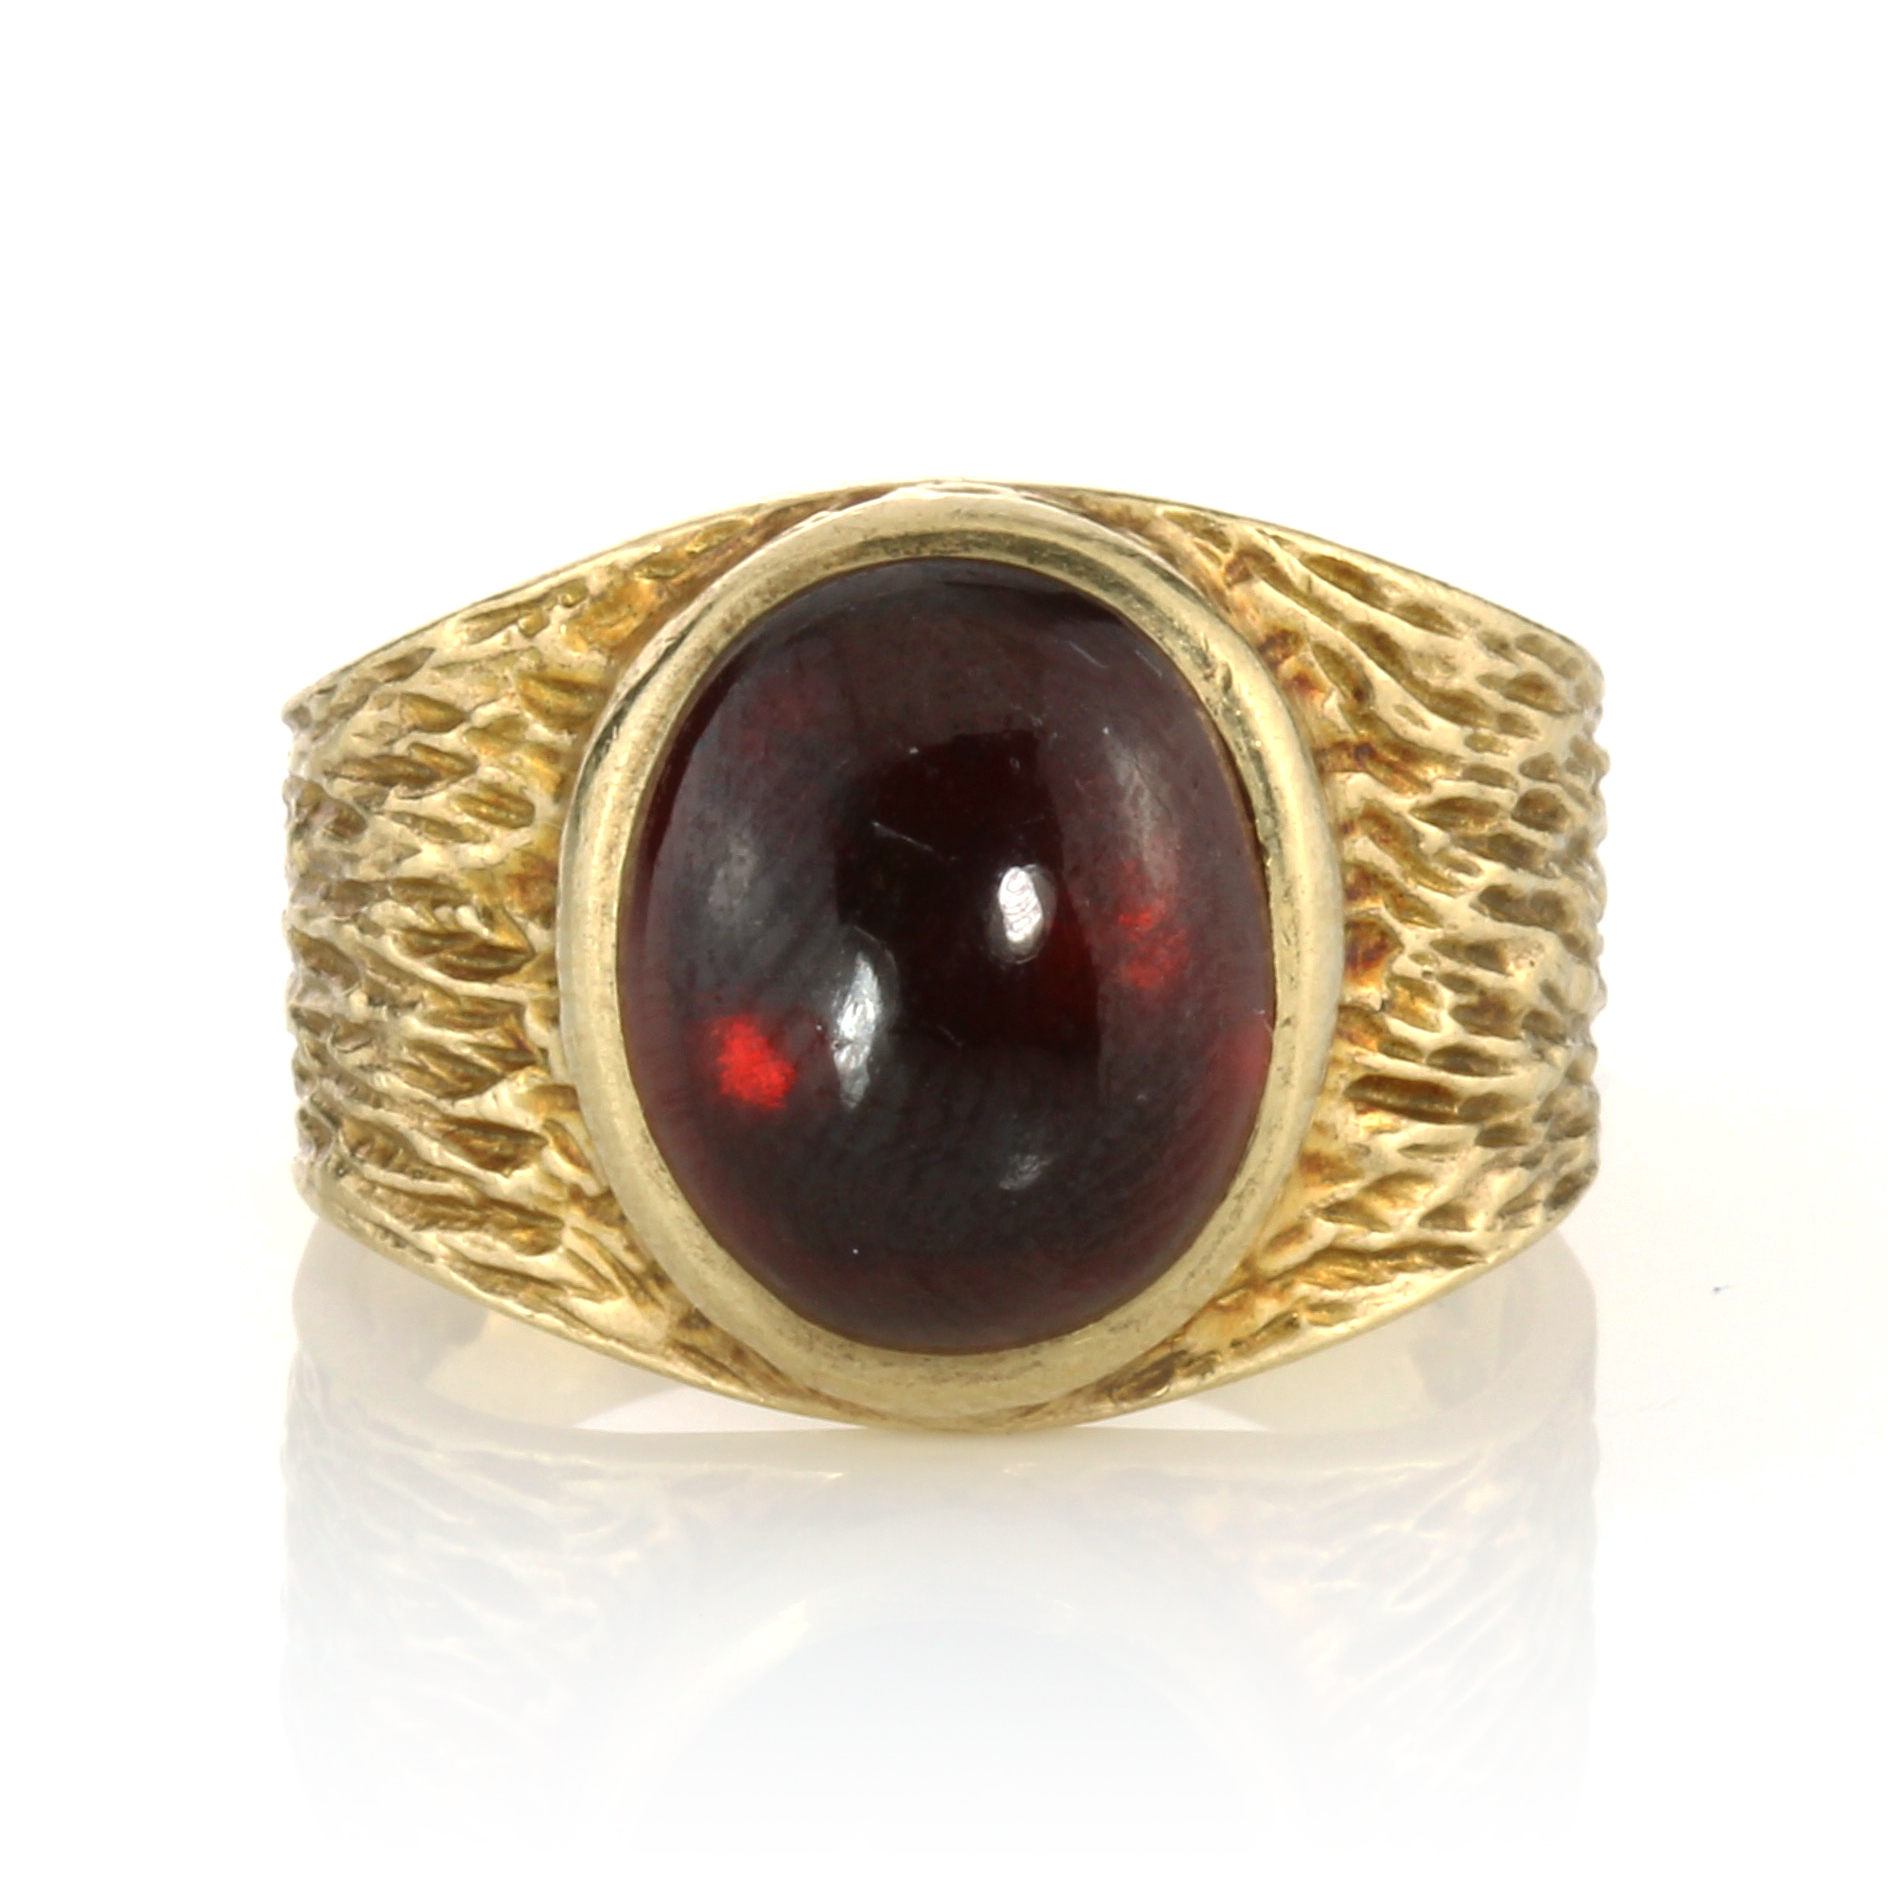 Los 37 - A GARNET DRESS RING, CIRCA 1970 set with a large oval cabochon garnet within a textured band, signed